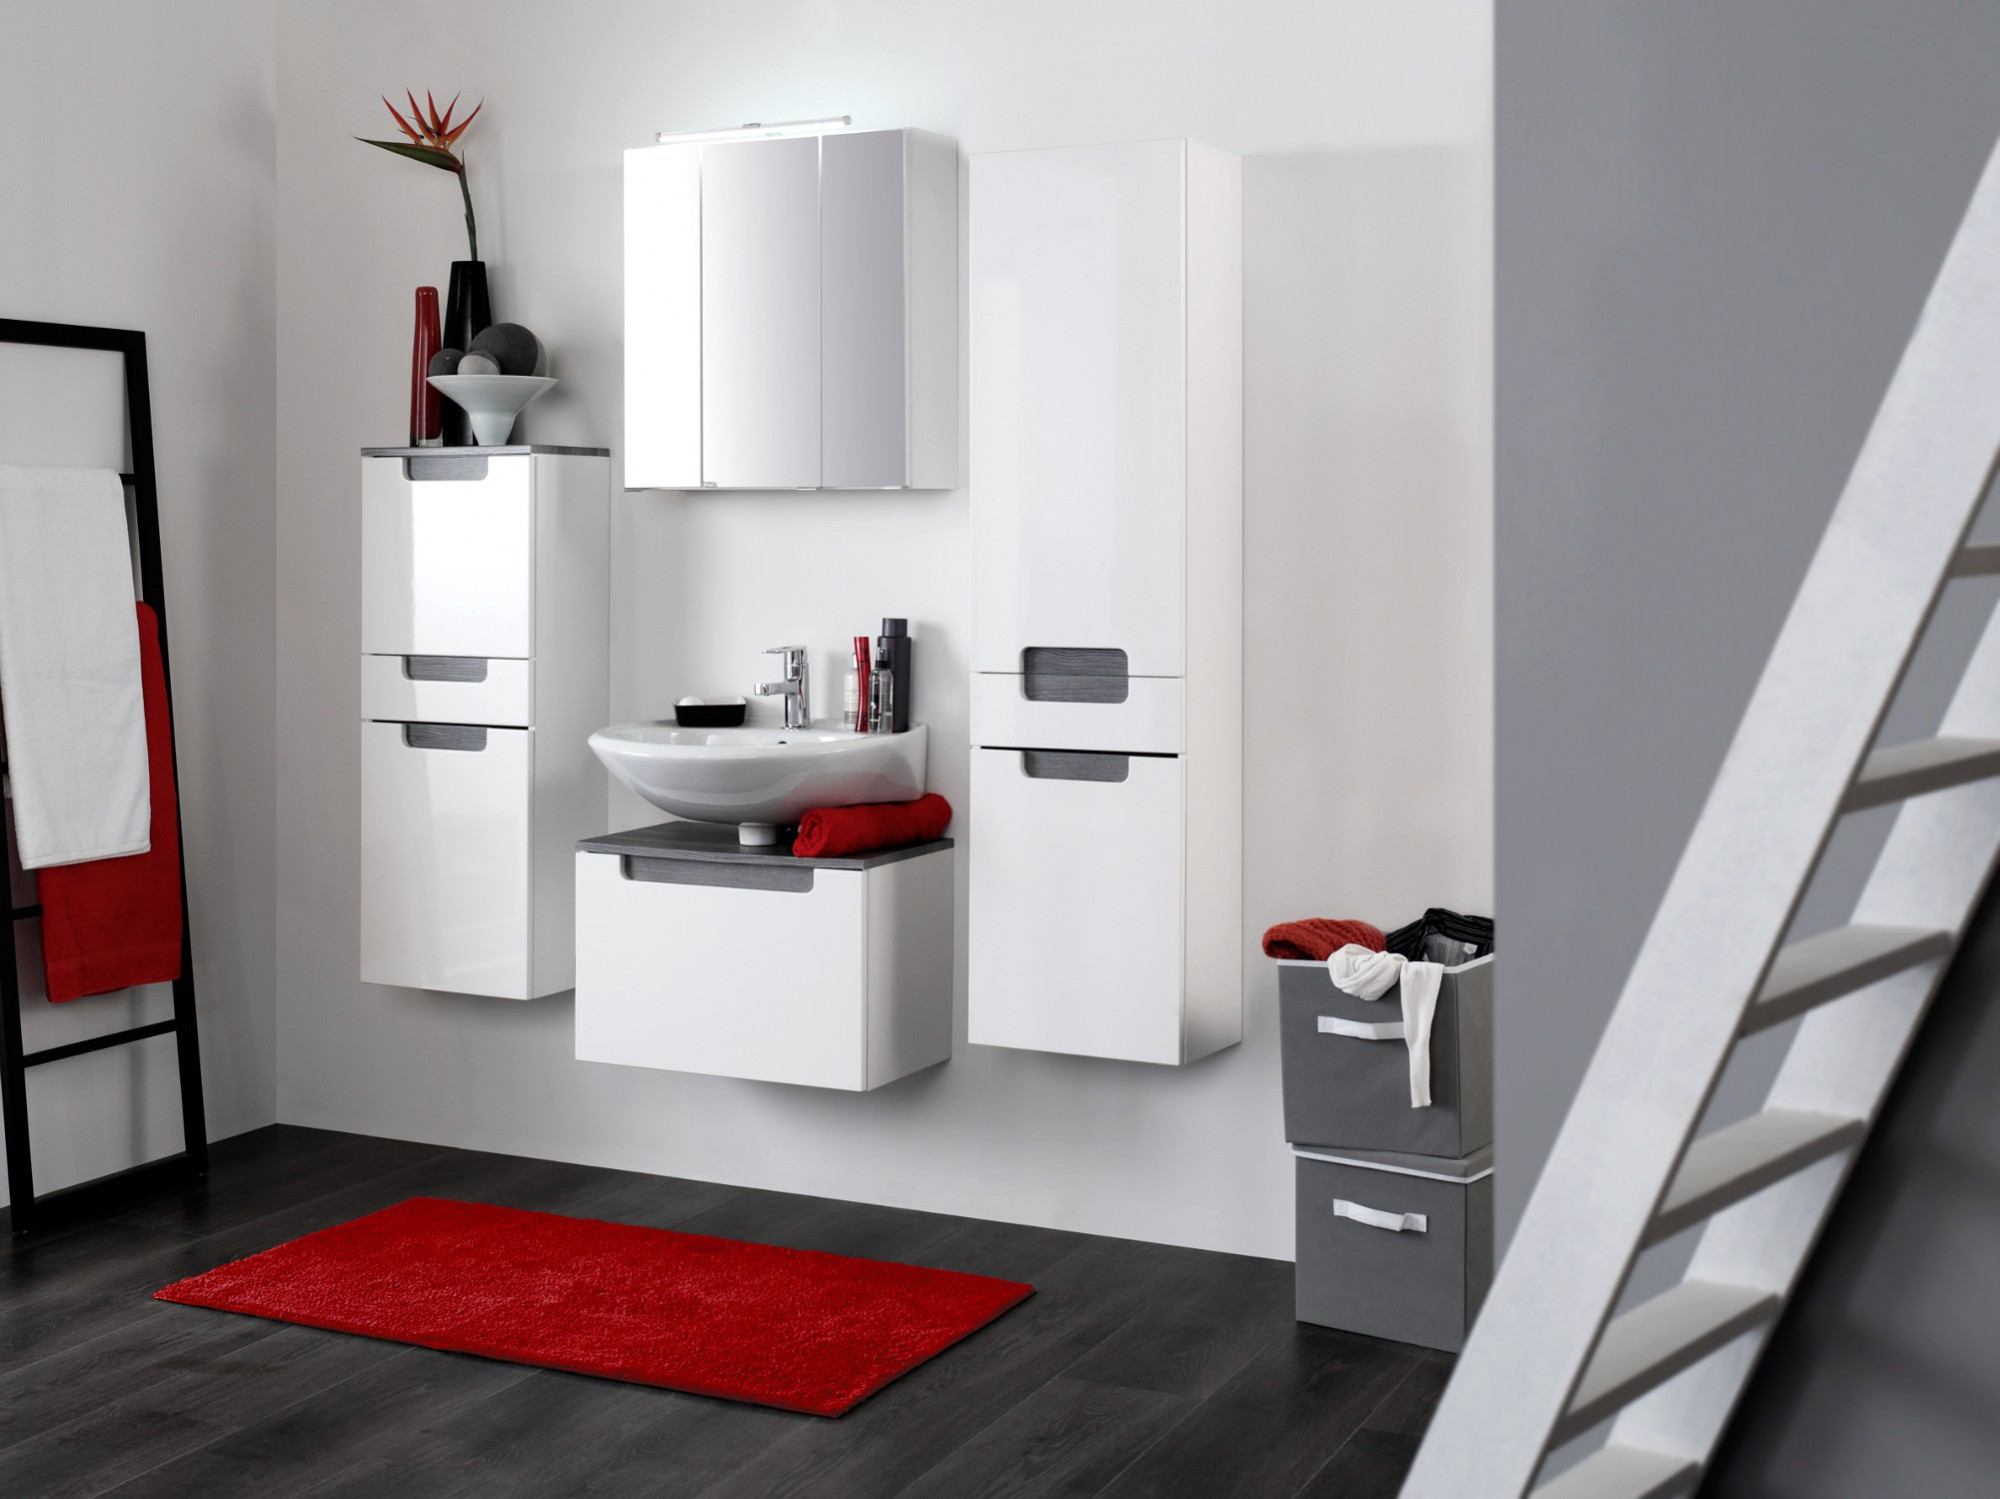 bad hochschrank siena 2 t rig 1 schublade 40 cm breit hochglanz wei rauchsilber bad siena. Black Bedroom Furniture Sets. Home Design Ideas